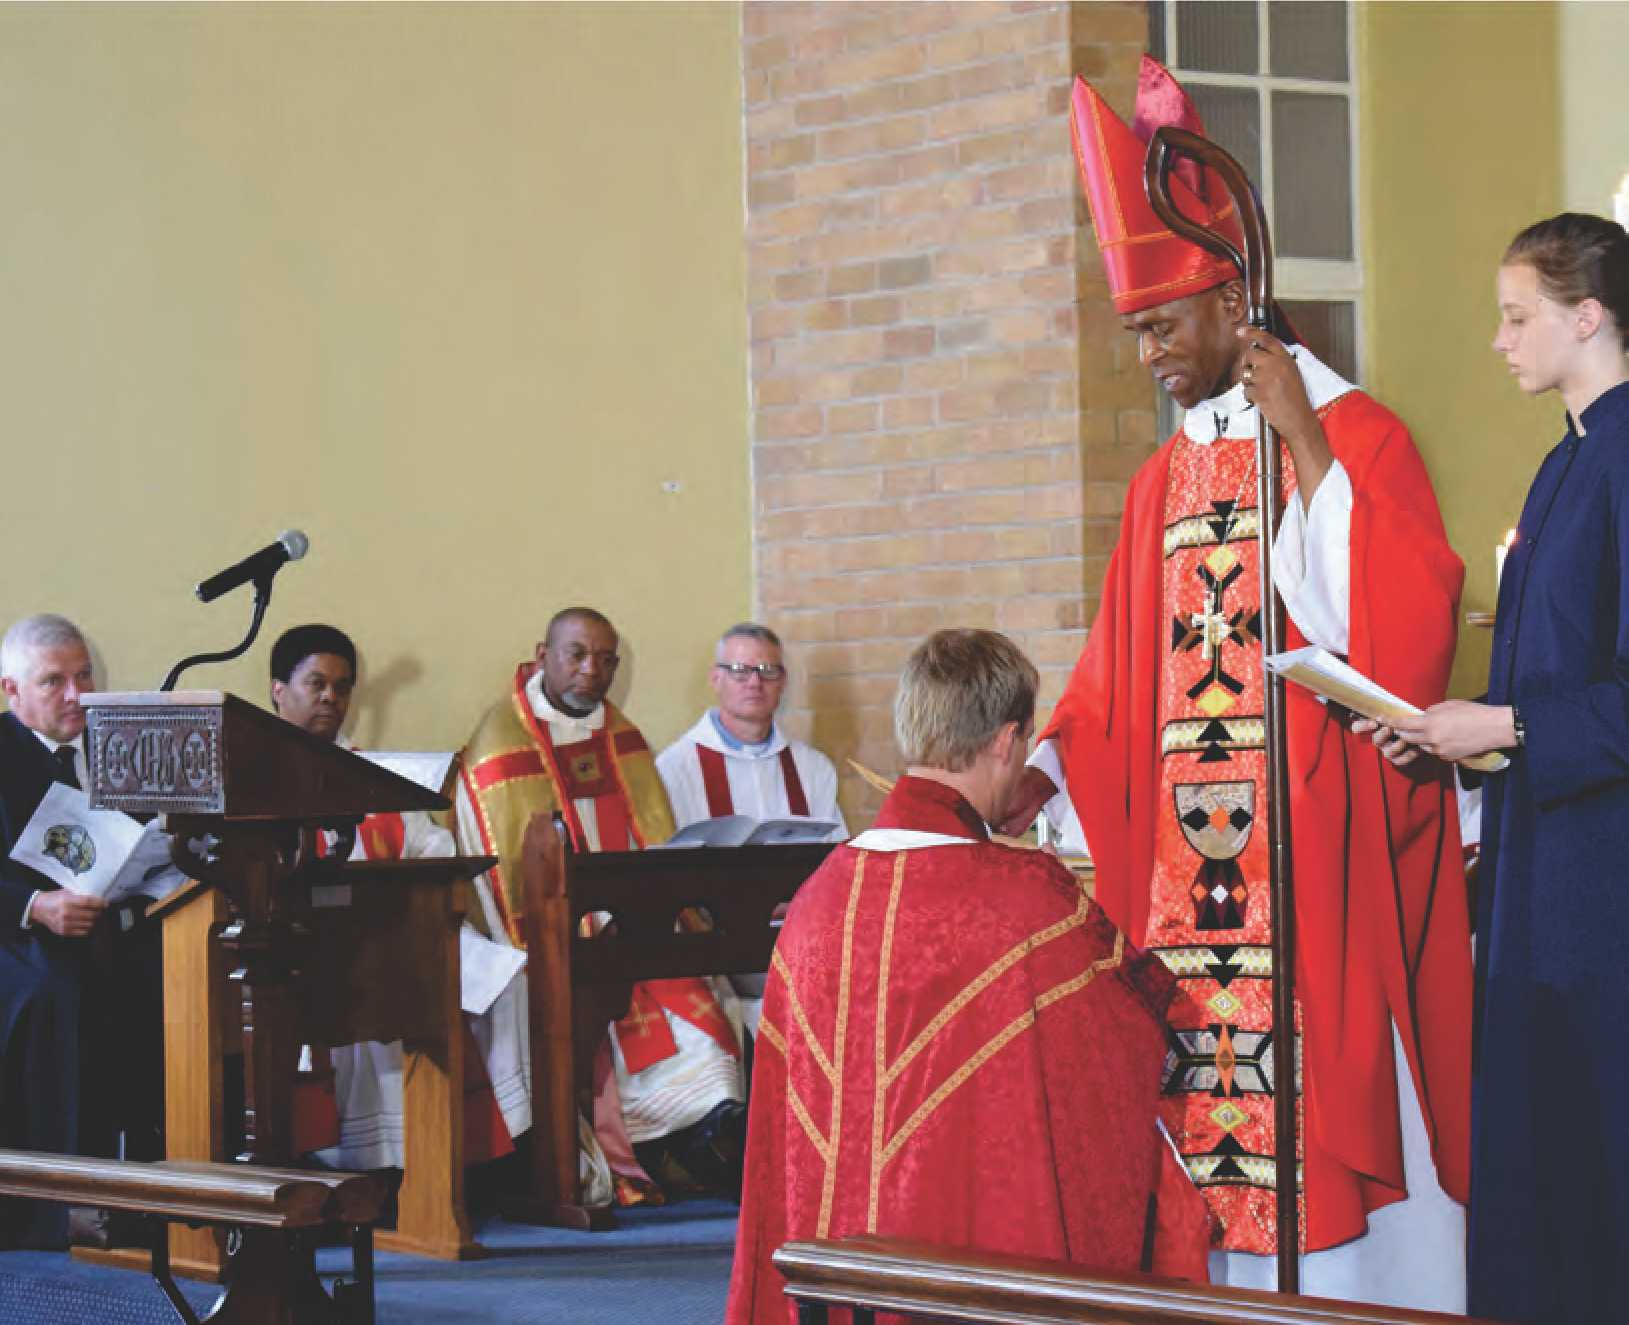 Father Grants ordination in SMS Chapel momentous and historic